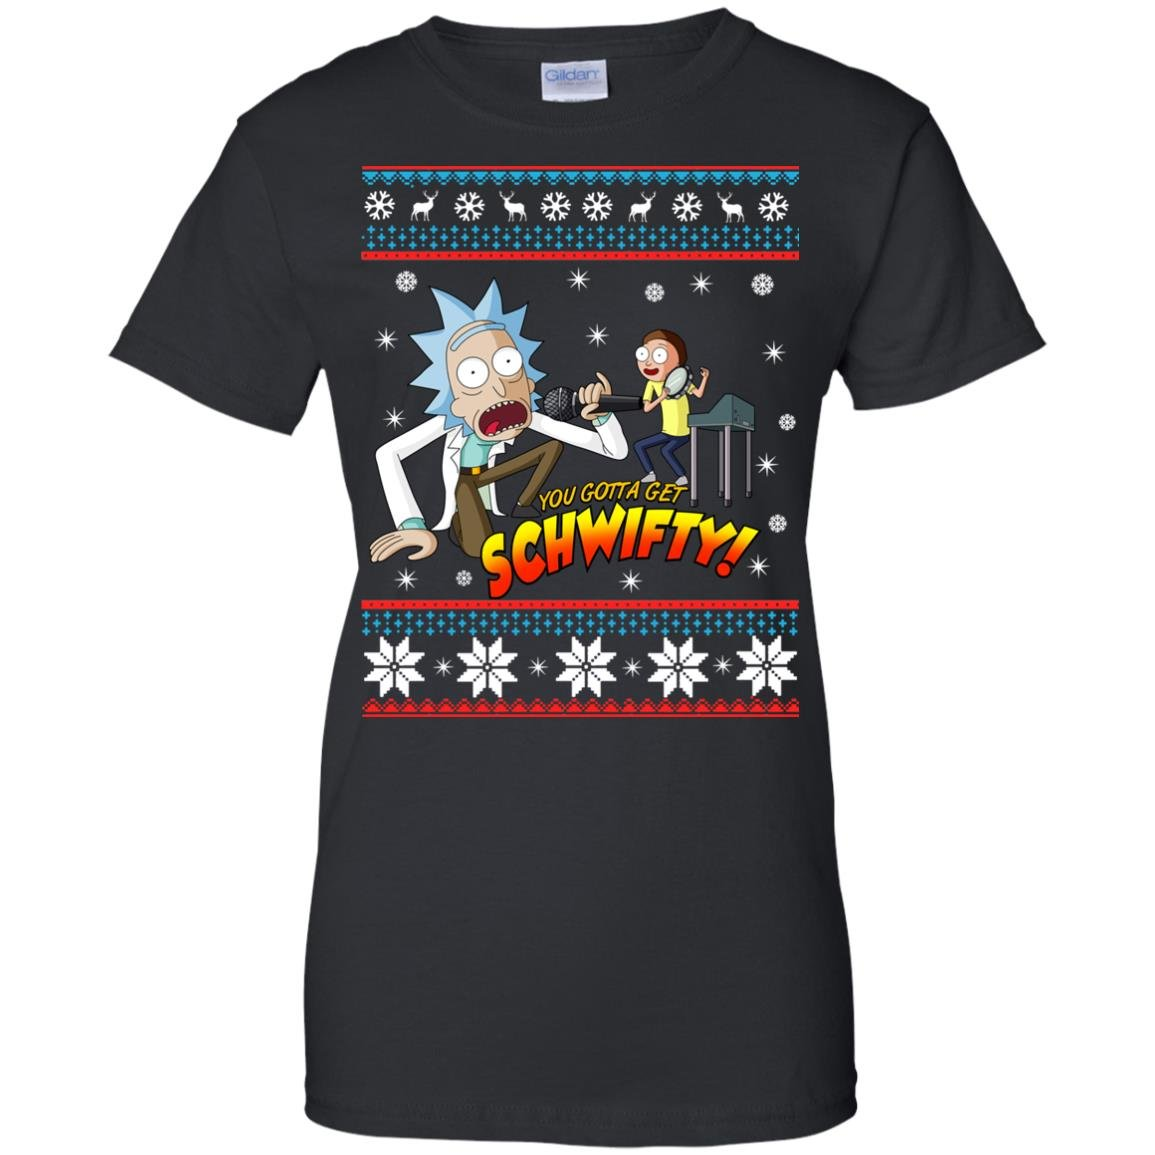 image 2420 - You gotta get Schwifty Ugly Christmas sweater, hoodie